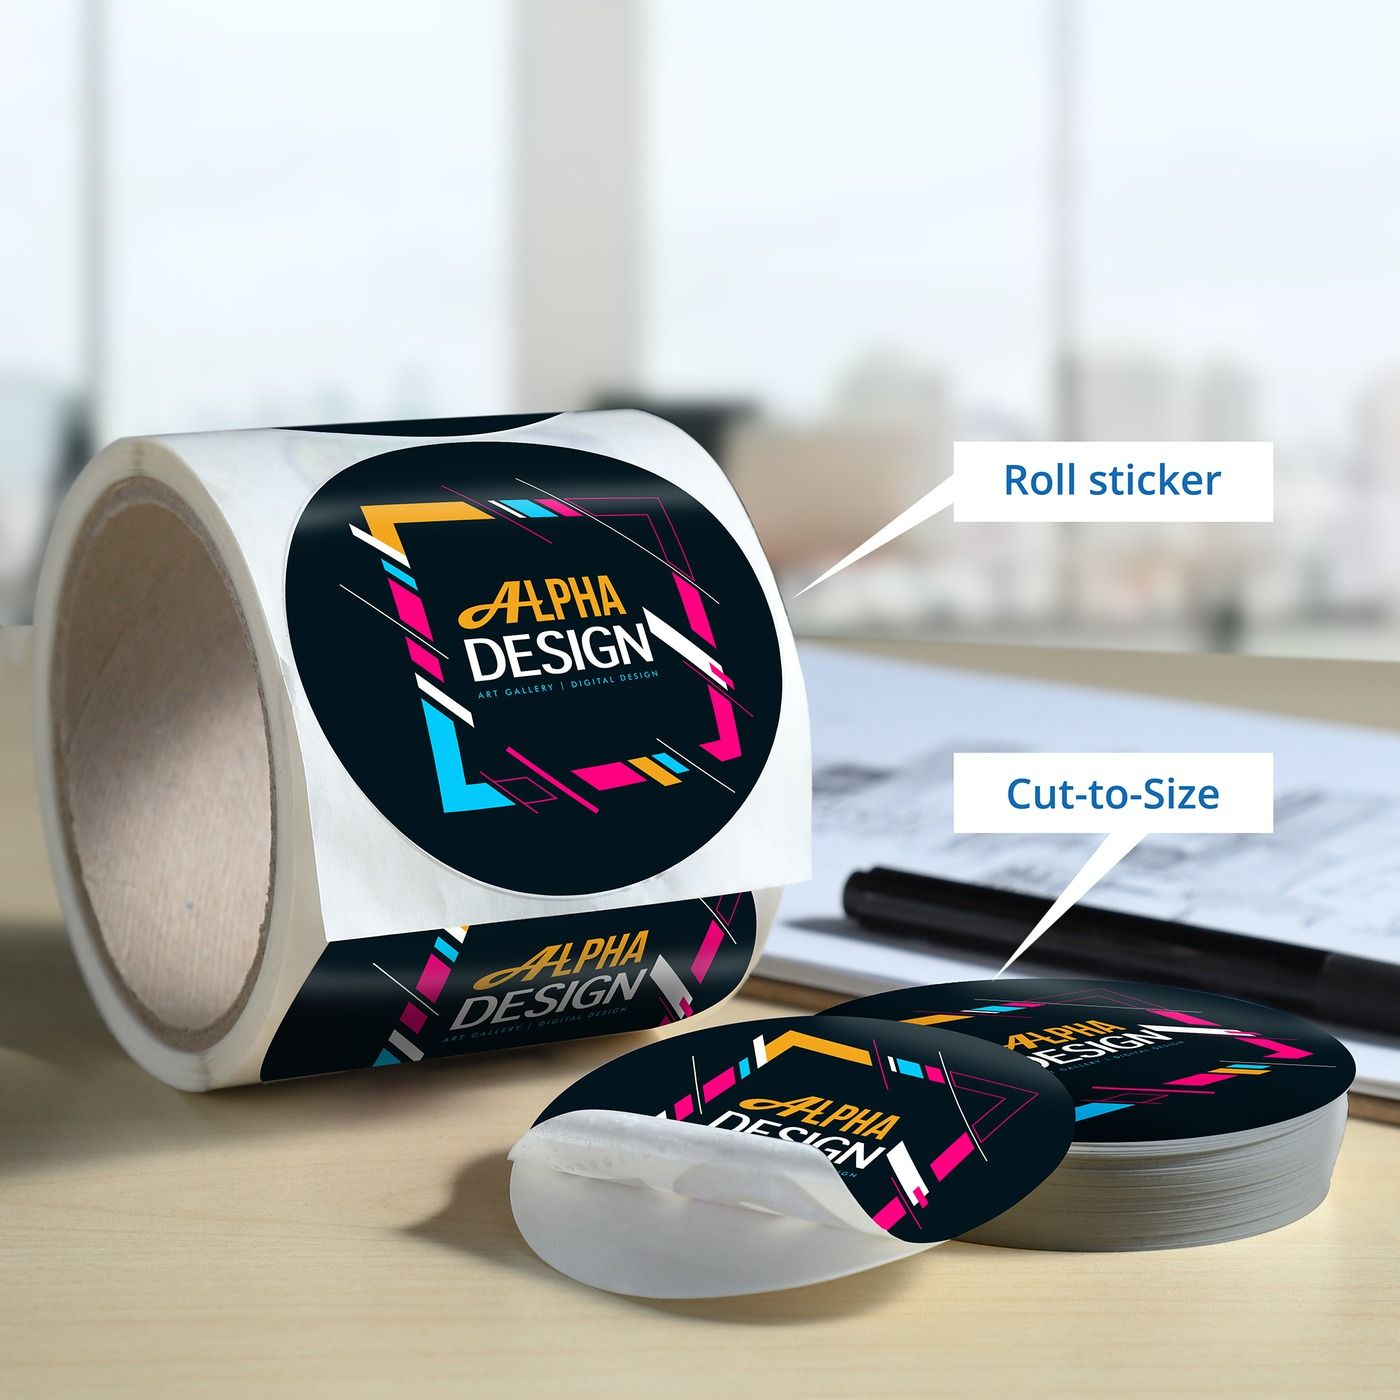 Cut to size and roll custom sticker custom sticker printing custom stickers business branding sticker